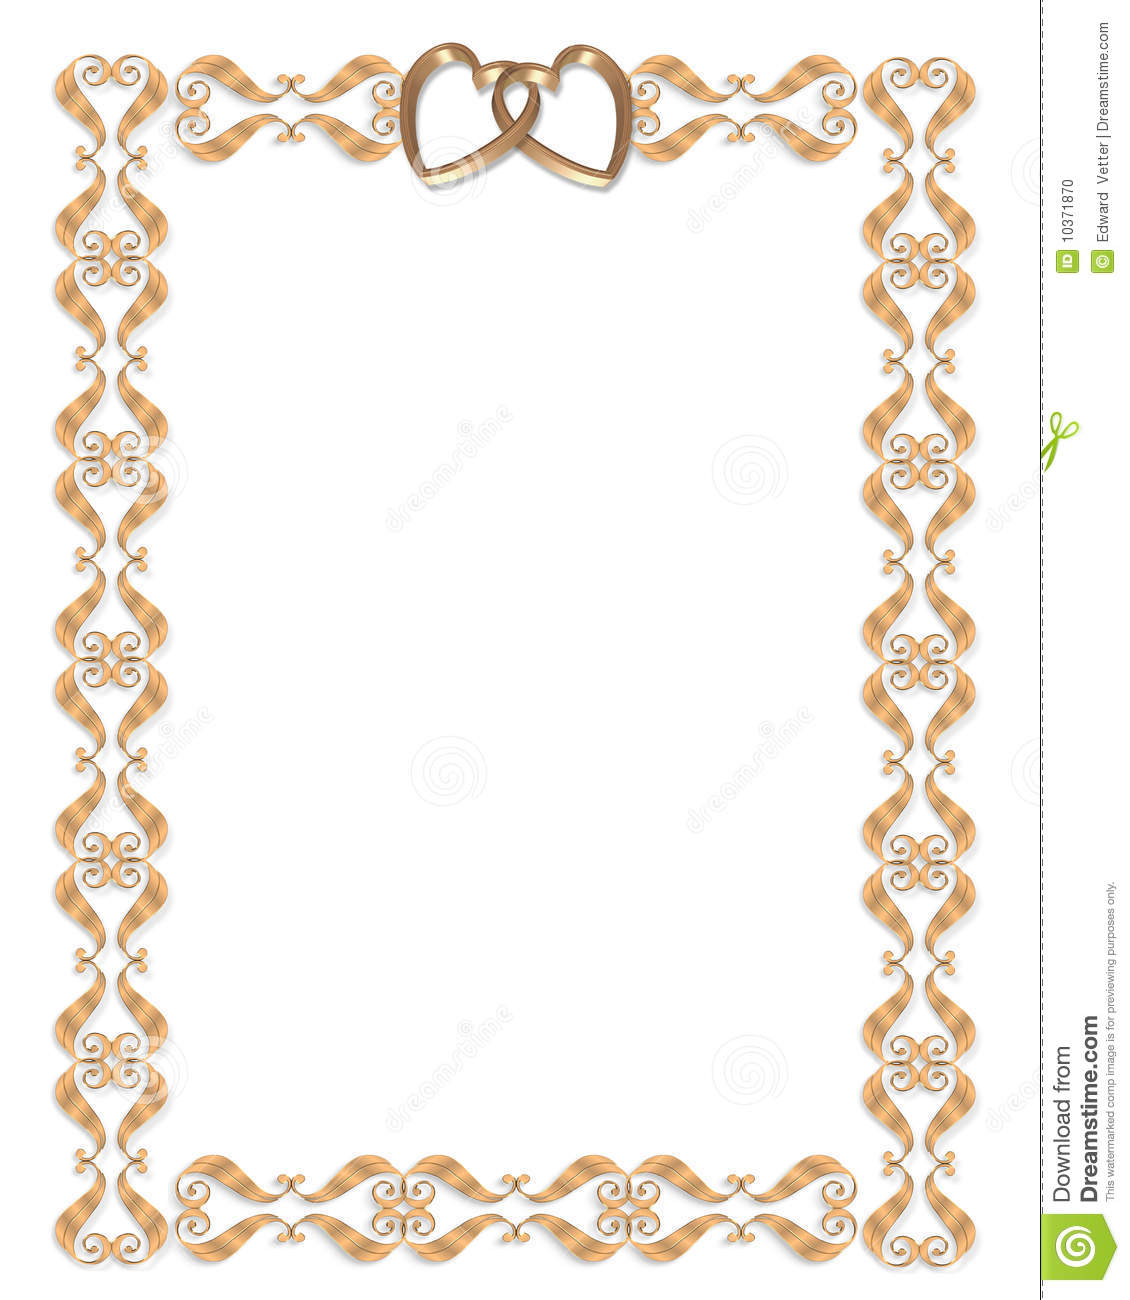 50th anniversary hearts clipart clipart suggest for Table th border